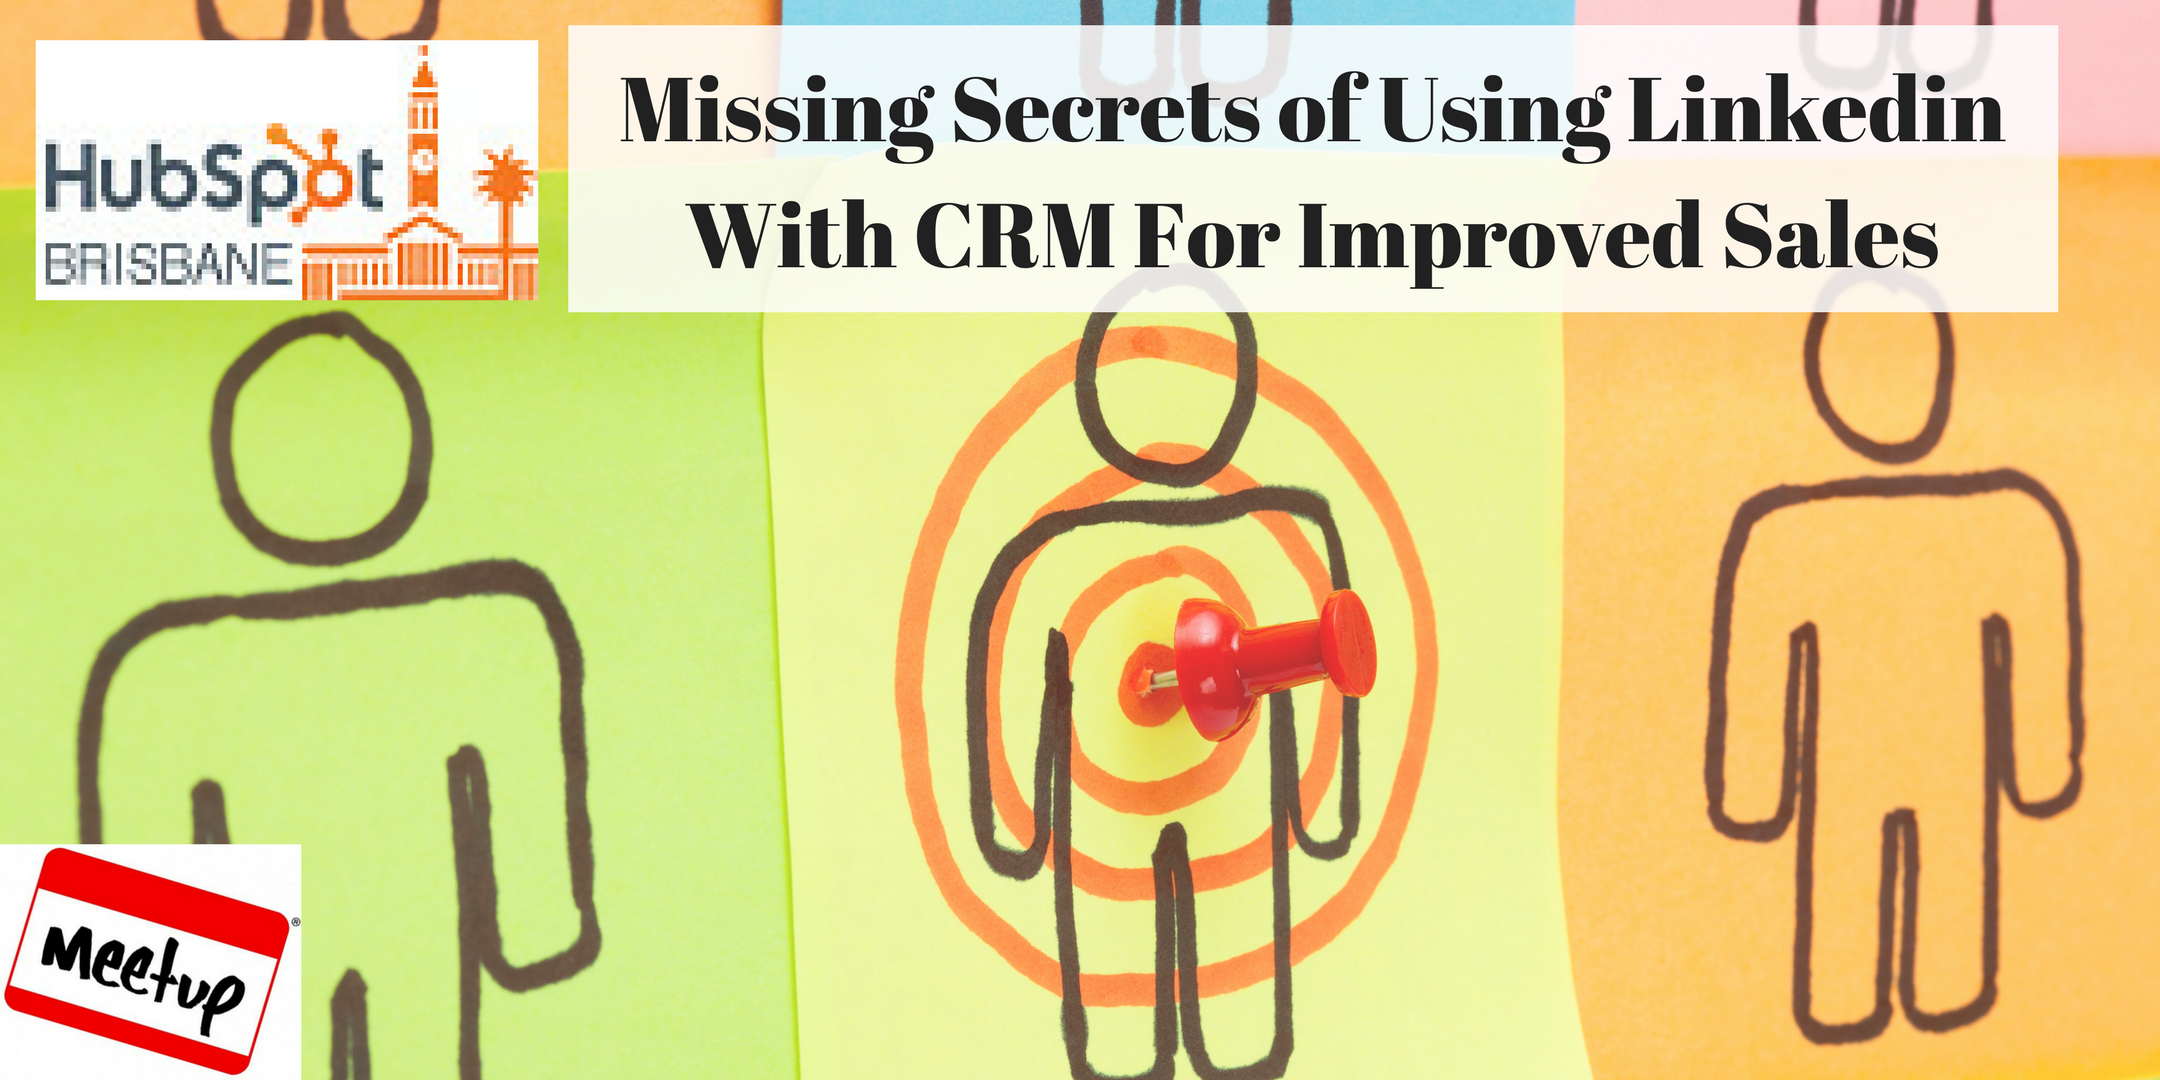 crm-and-linkedin-banner.jpg